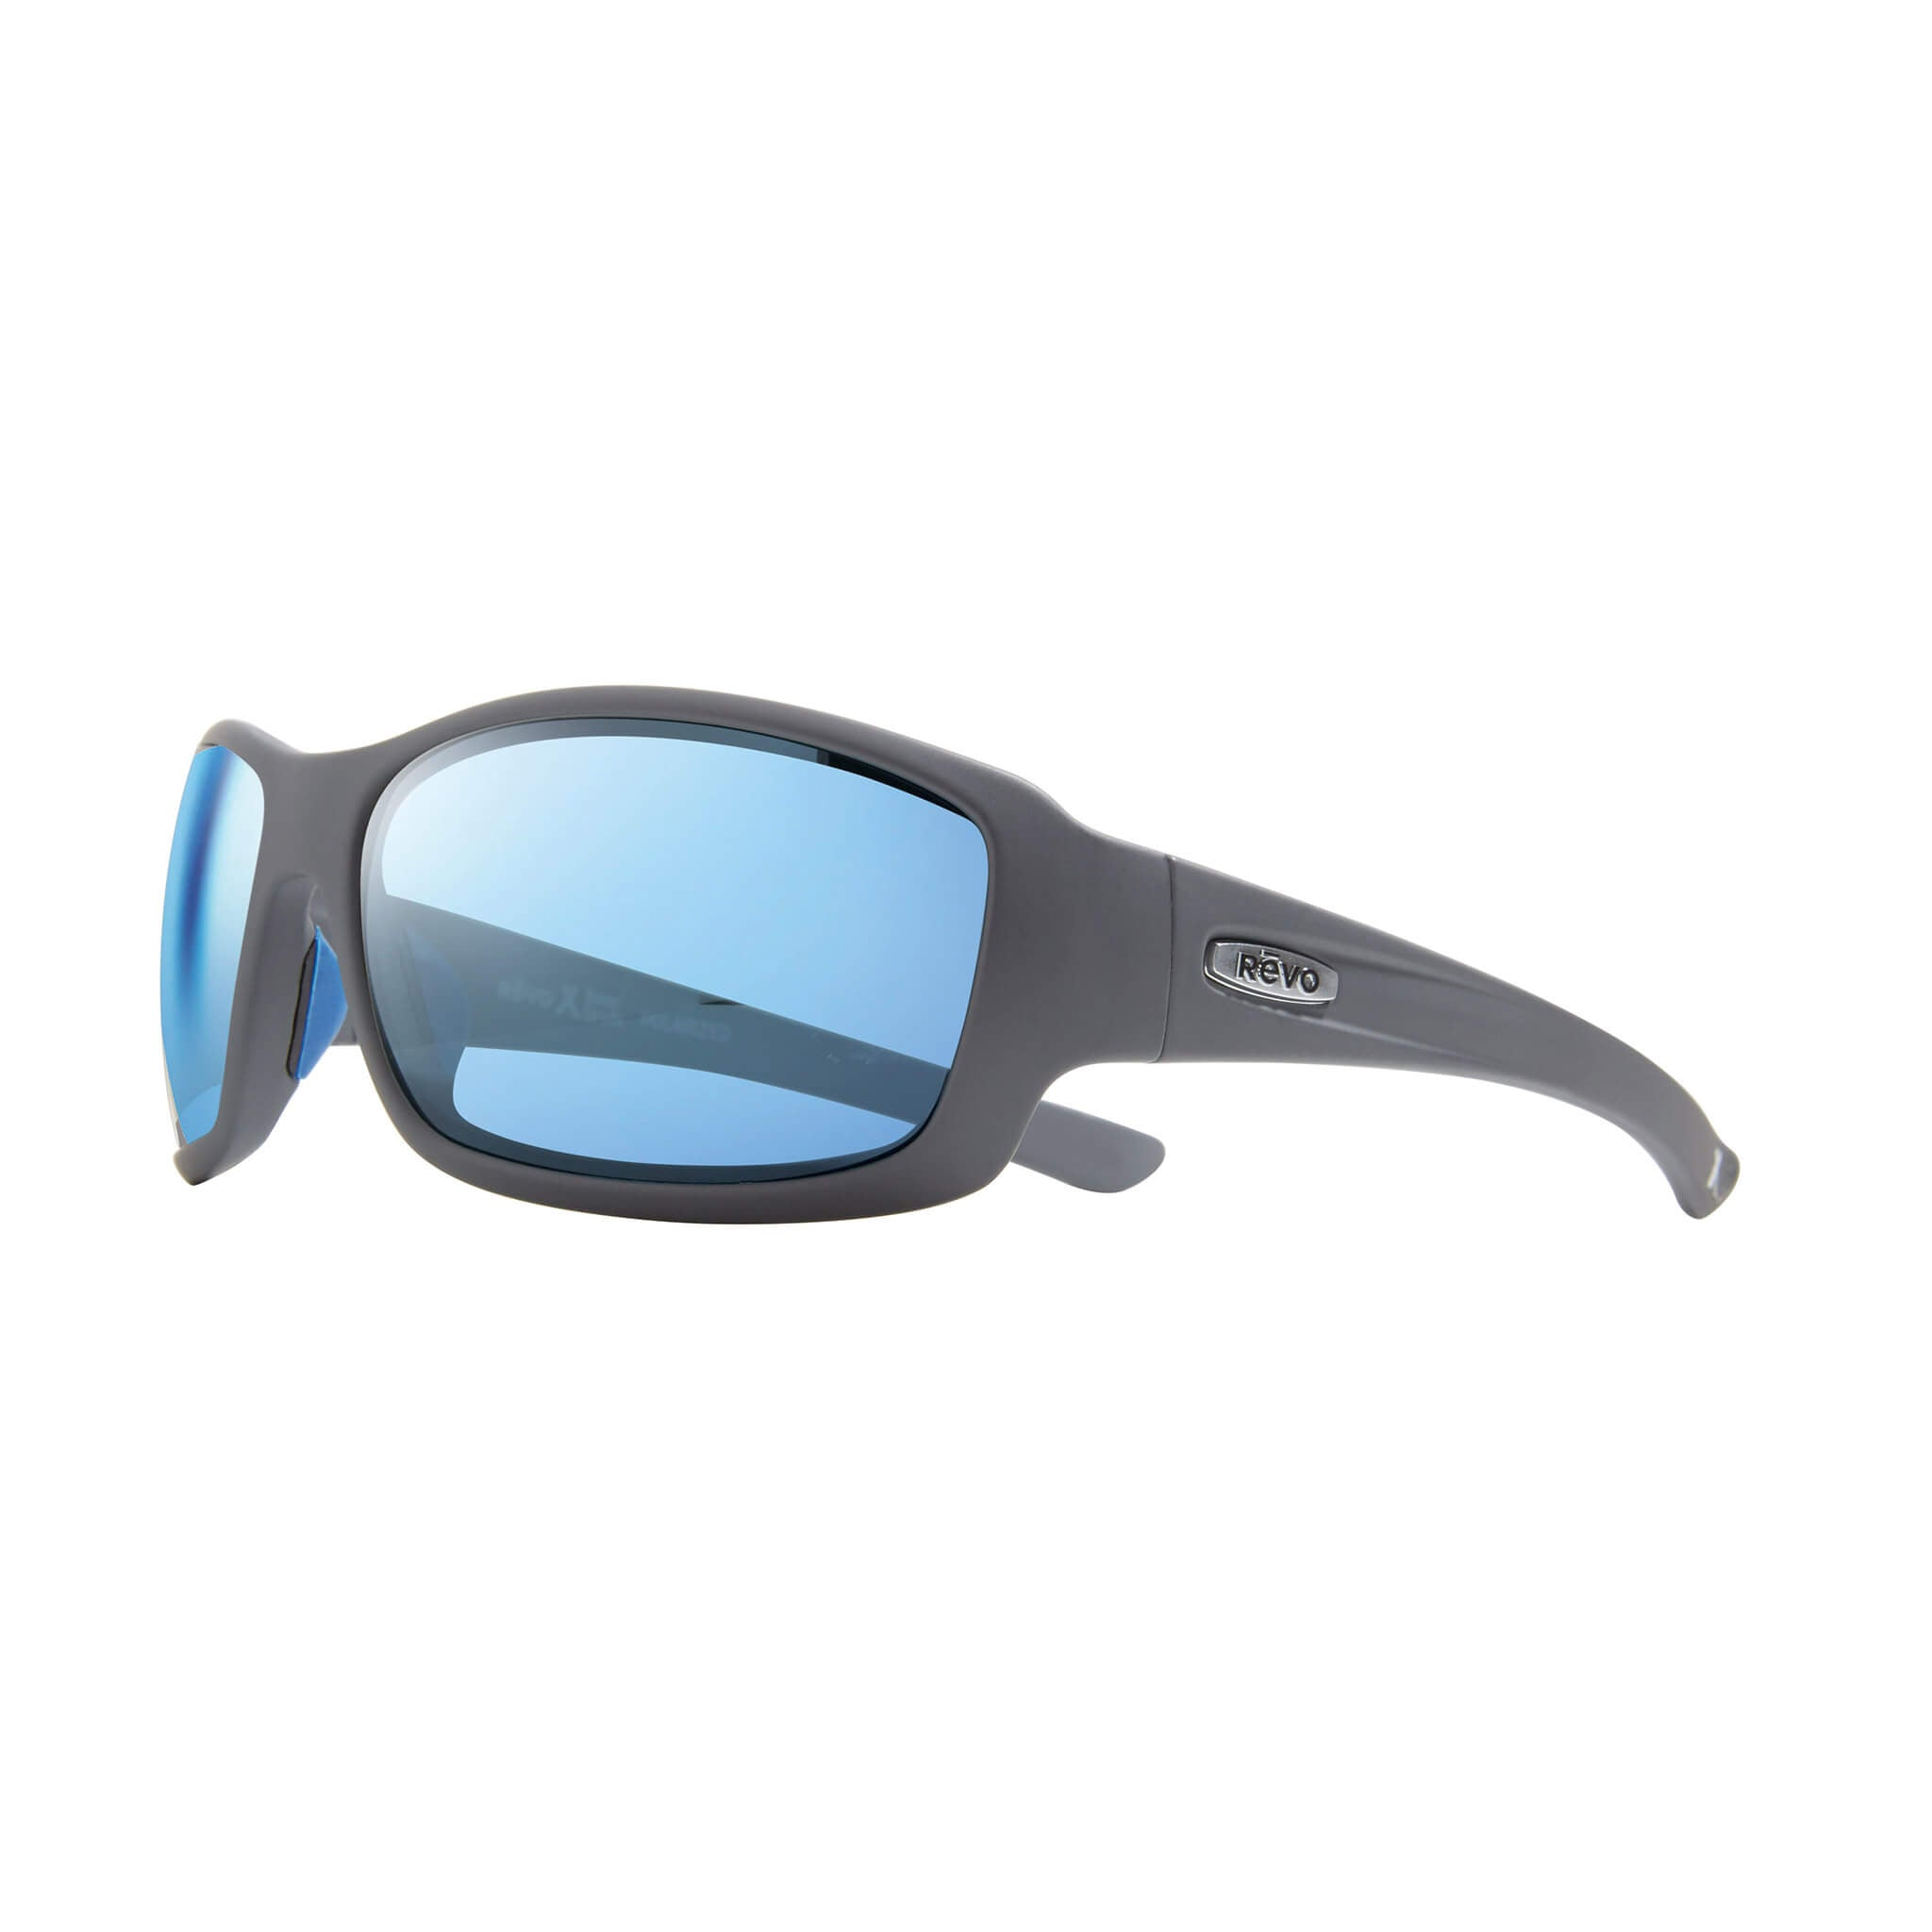 Maverick Matte graphite + blue water lens:Side view of Bear Grylls Revo Matte Graphite with Blue Water lens sunglasses